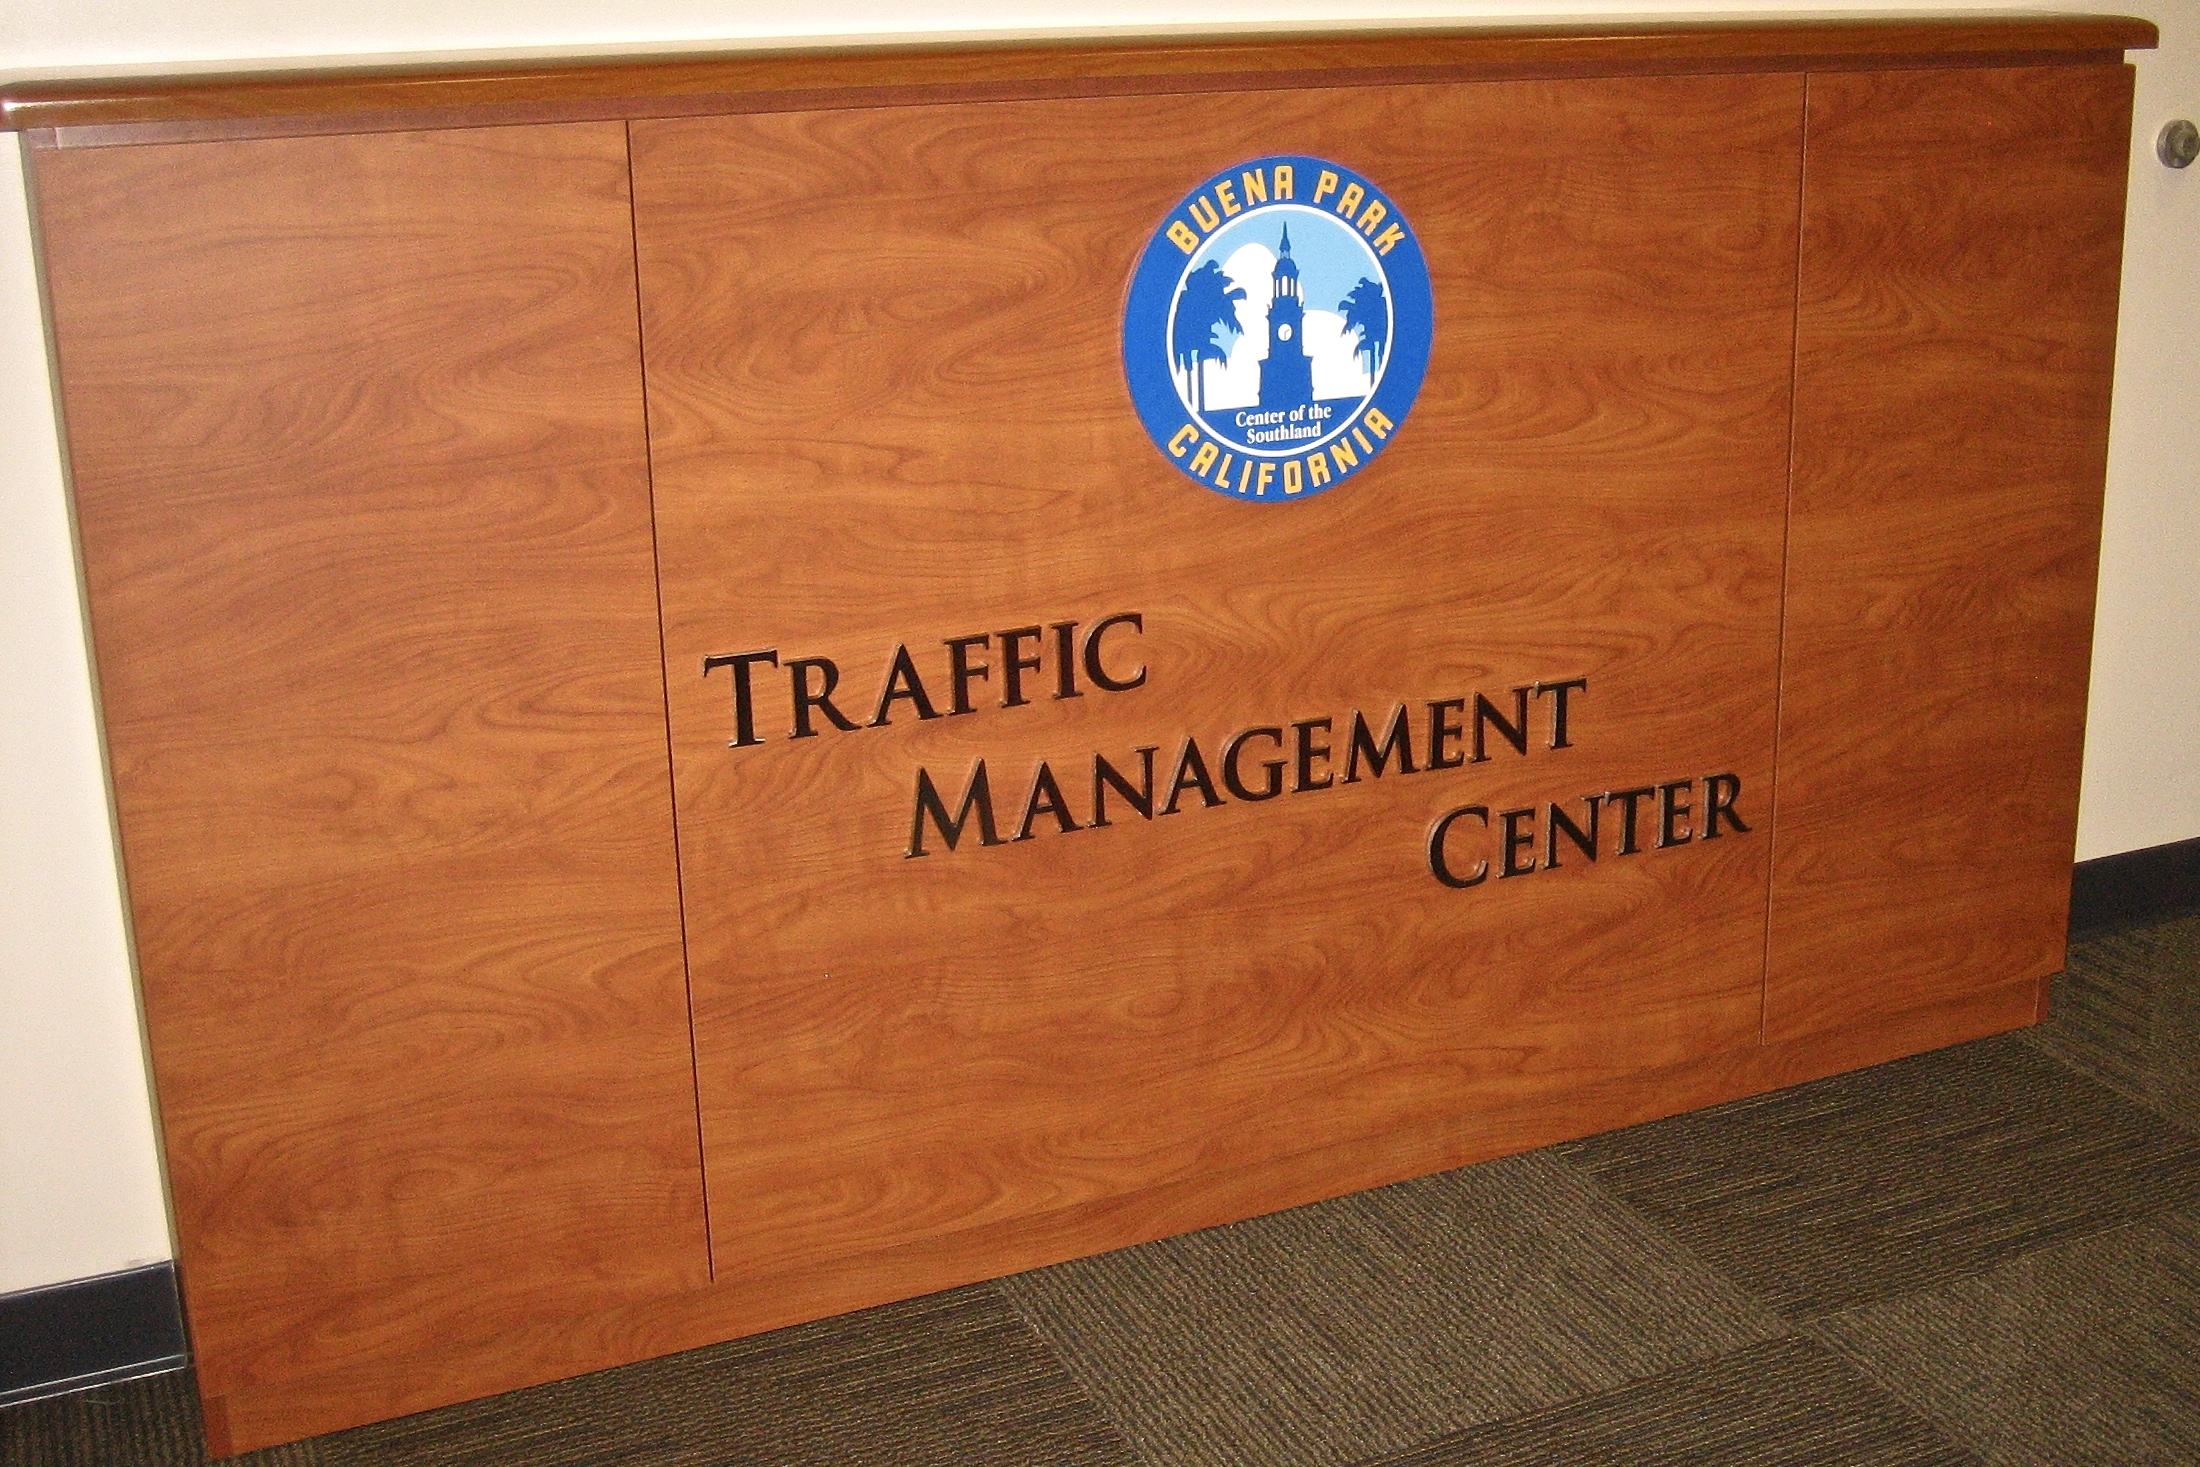 City of Buena Park Traffic Management Center display logo